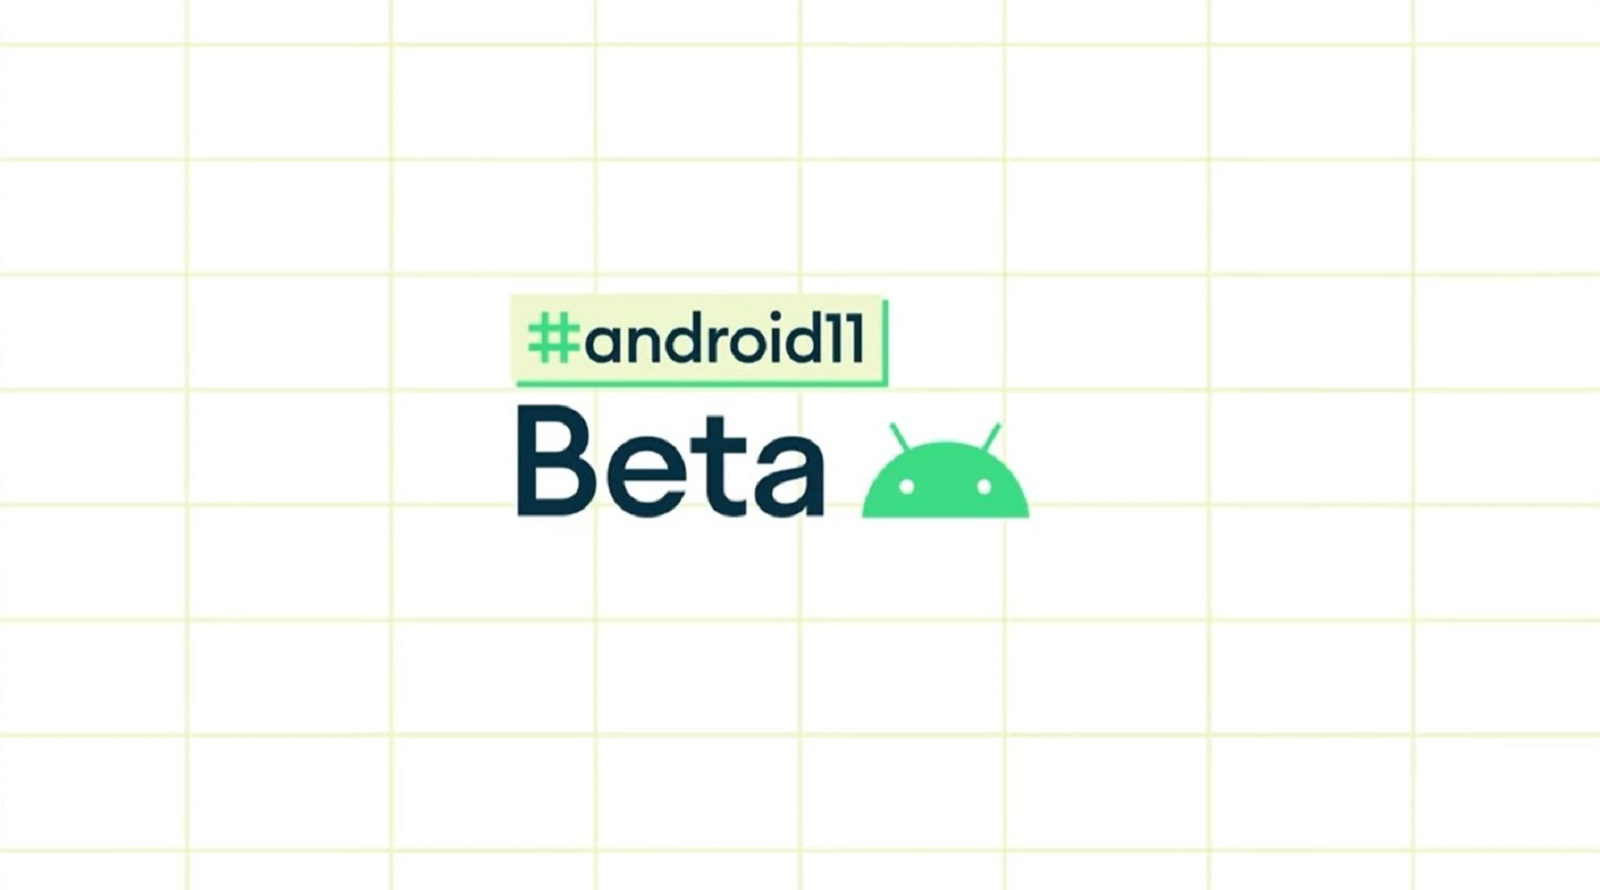 Android 11 beta launches – here are the new features thumbnail